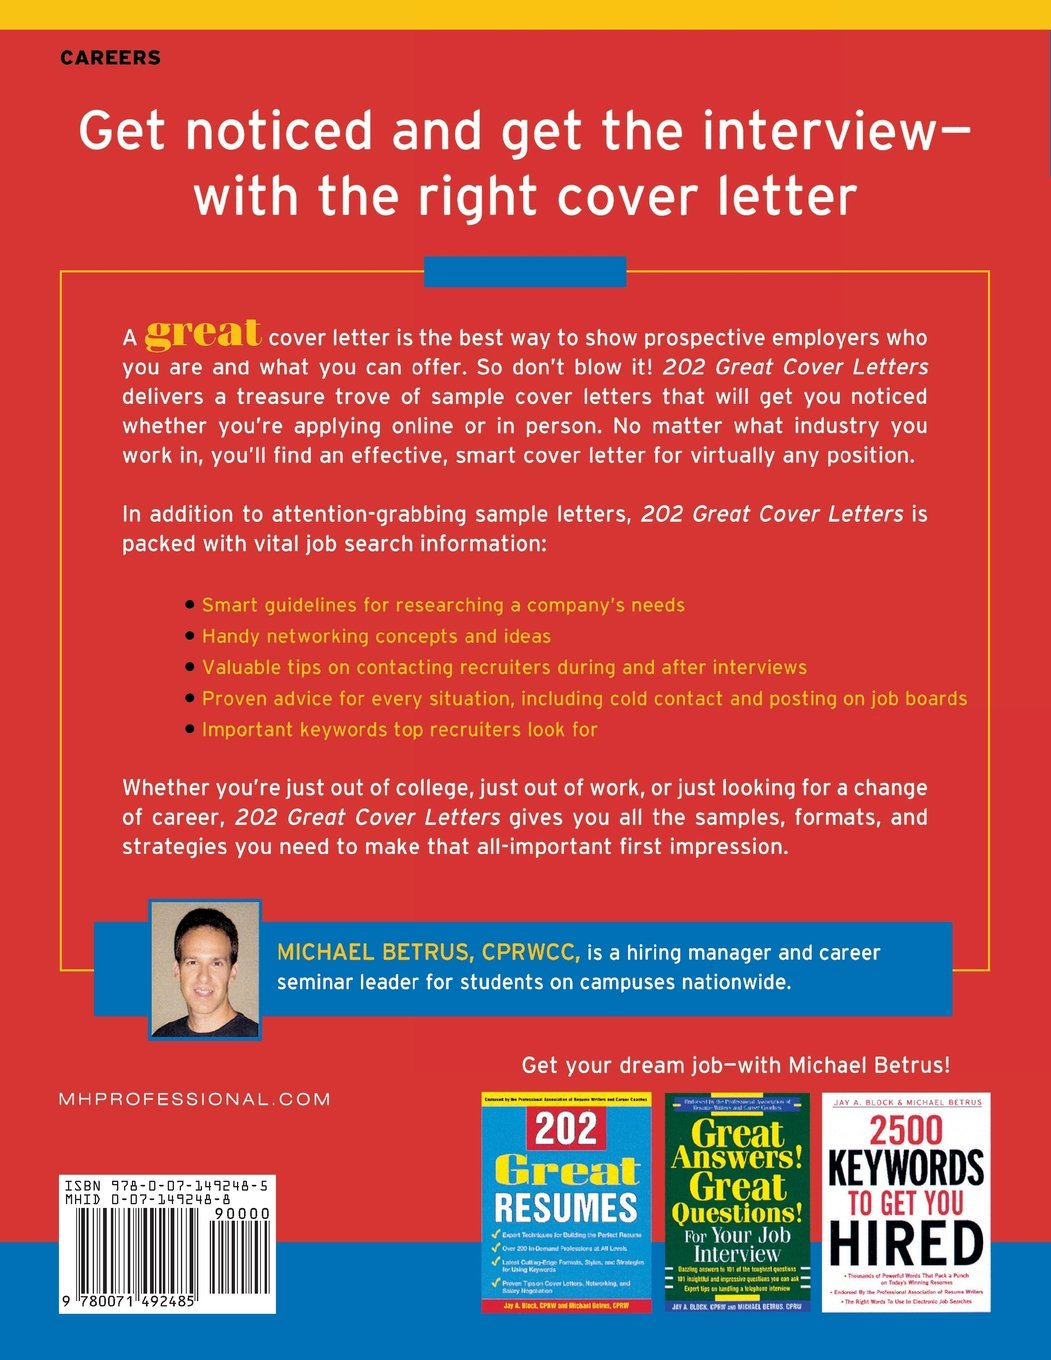 great cover letters for career changers